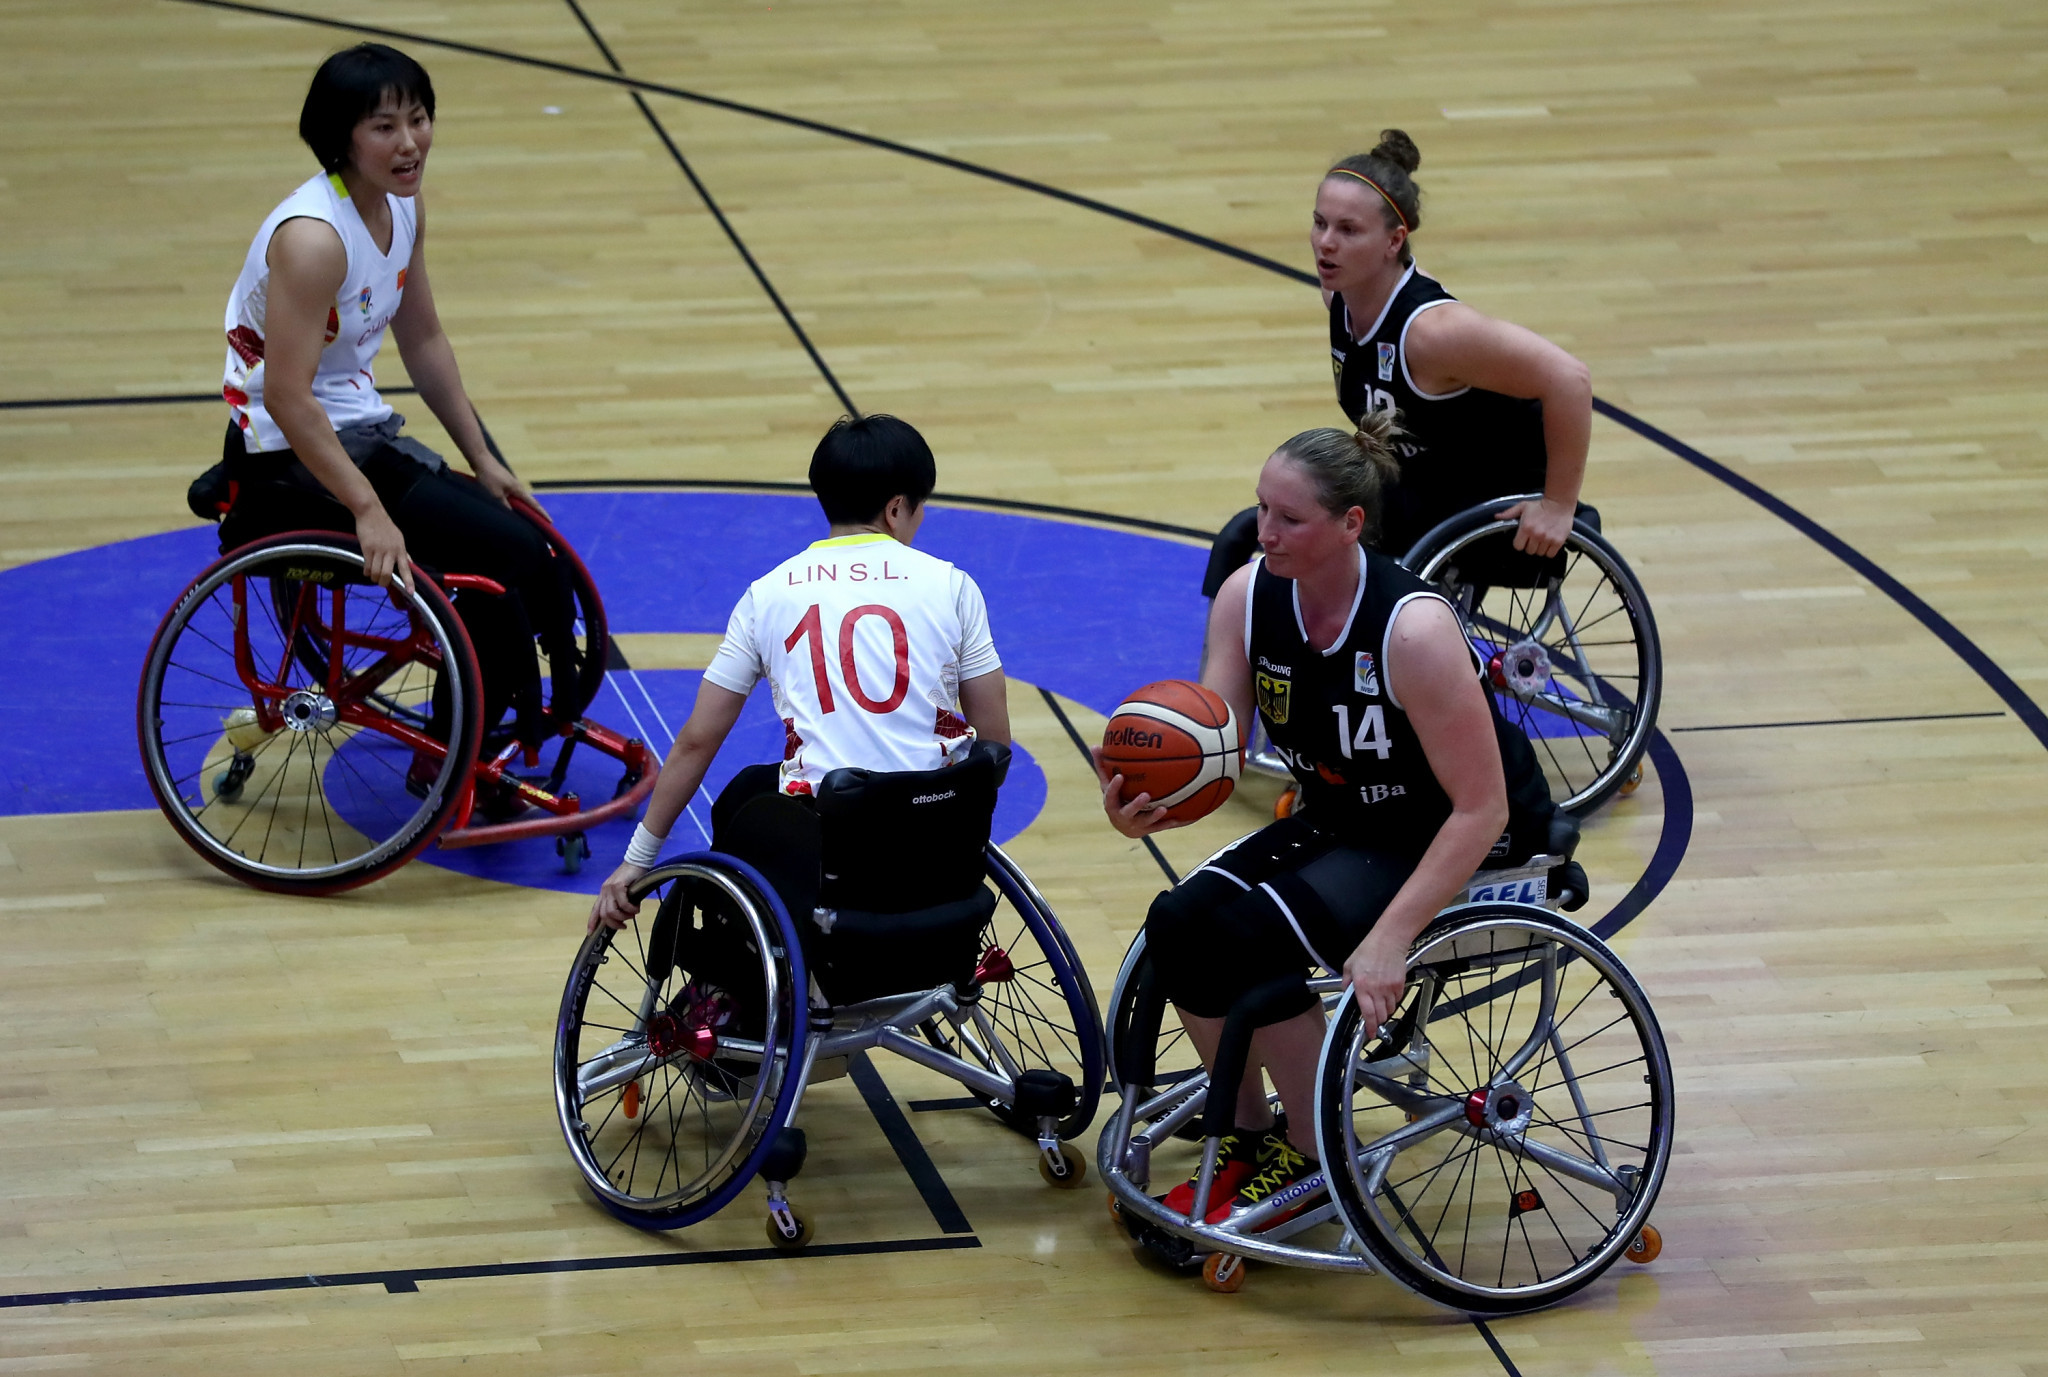 The Congress took place alongside the World Wheelchair Basketball Championships in Hamburg ©Getty Images